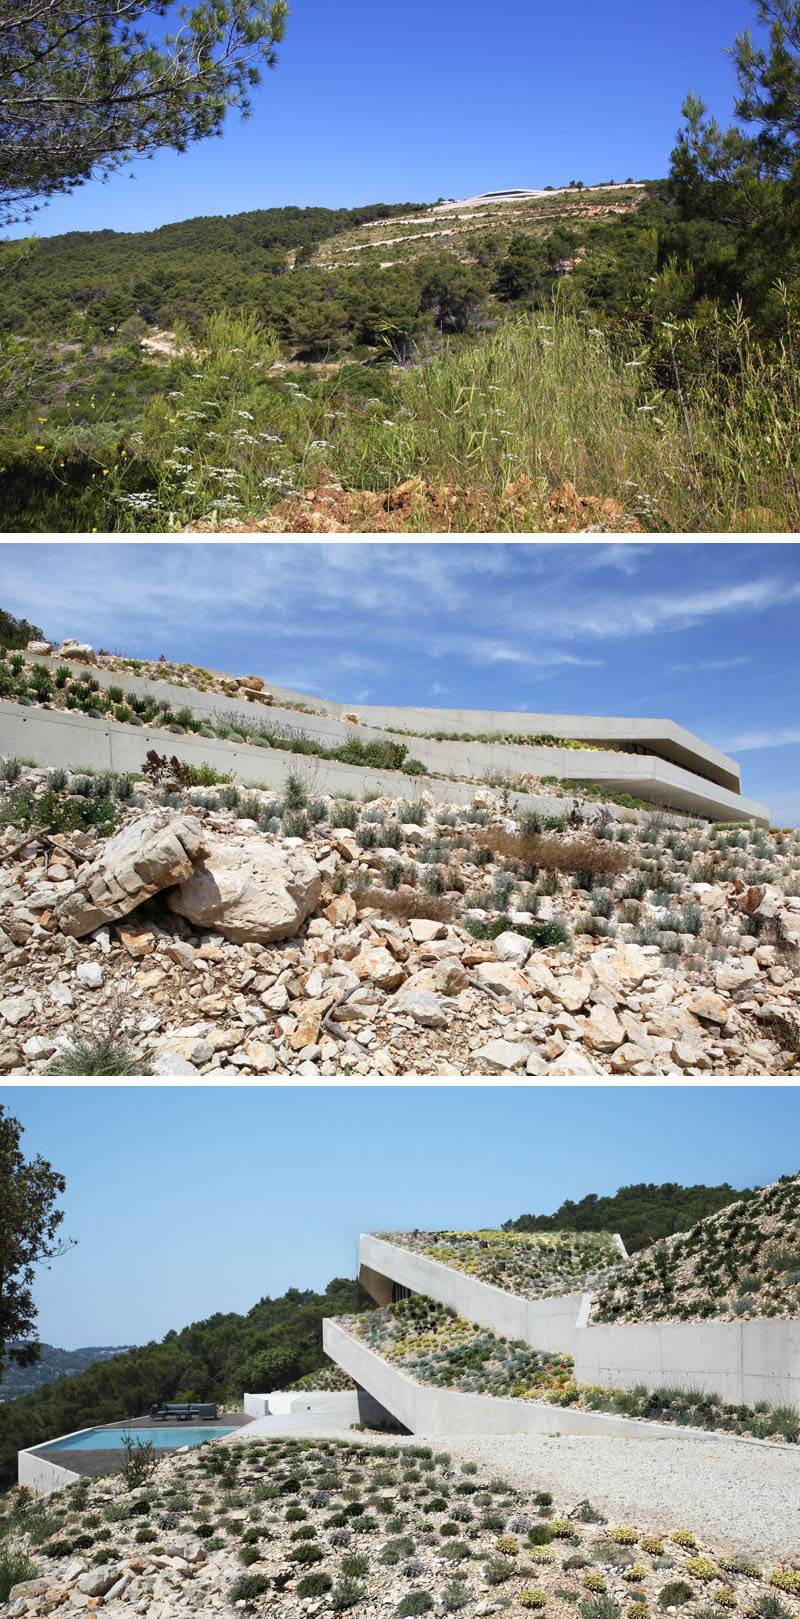 Proarh have recently completed Issa Megaron, a modern concrete house that's been designed for family retreats, and is dug into the hillside of Vis Island, Croatia. #Architecture #GreenRoof #ModernHouse